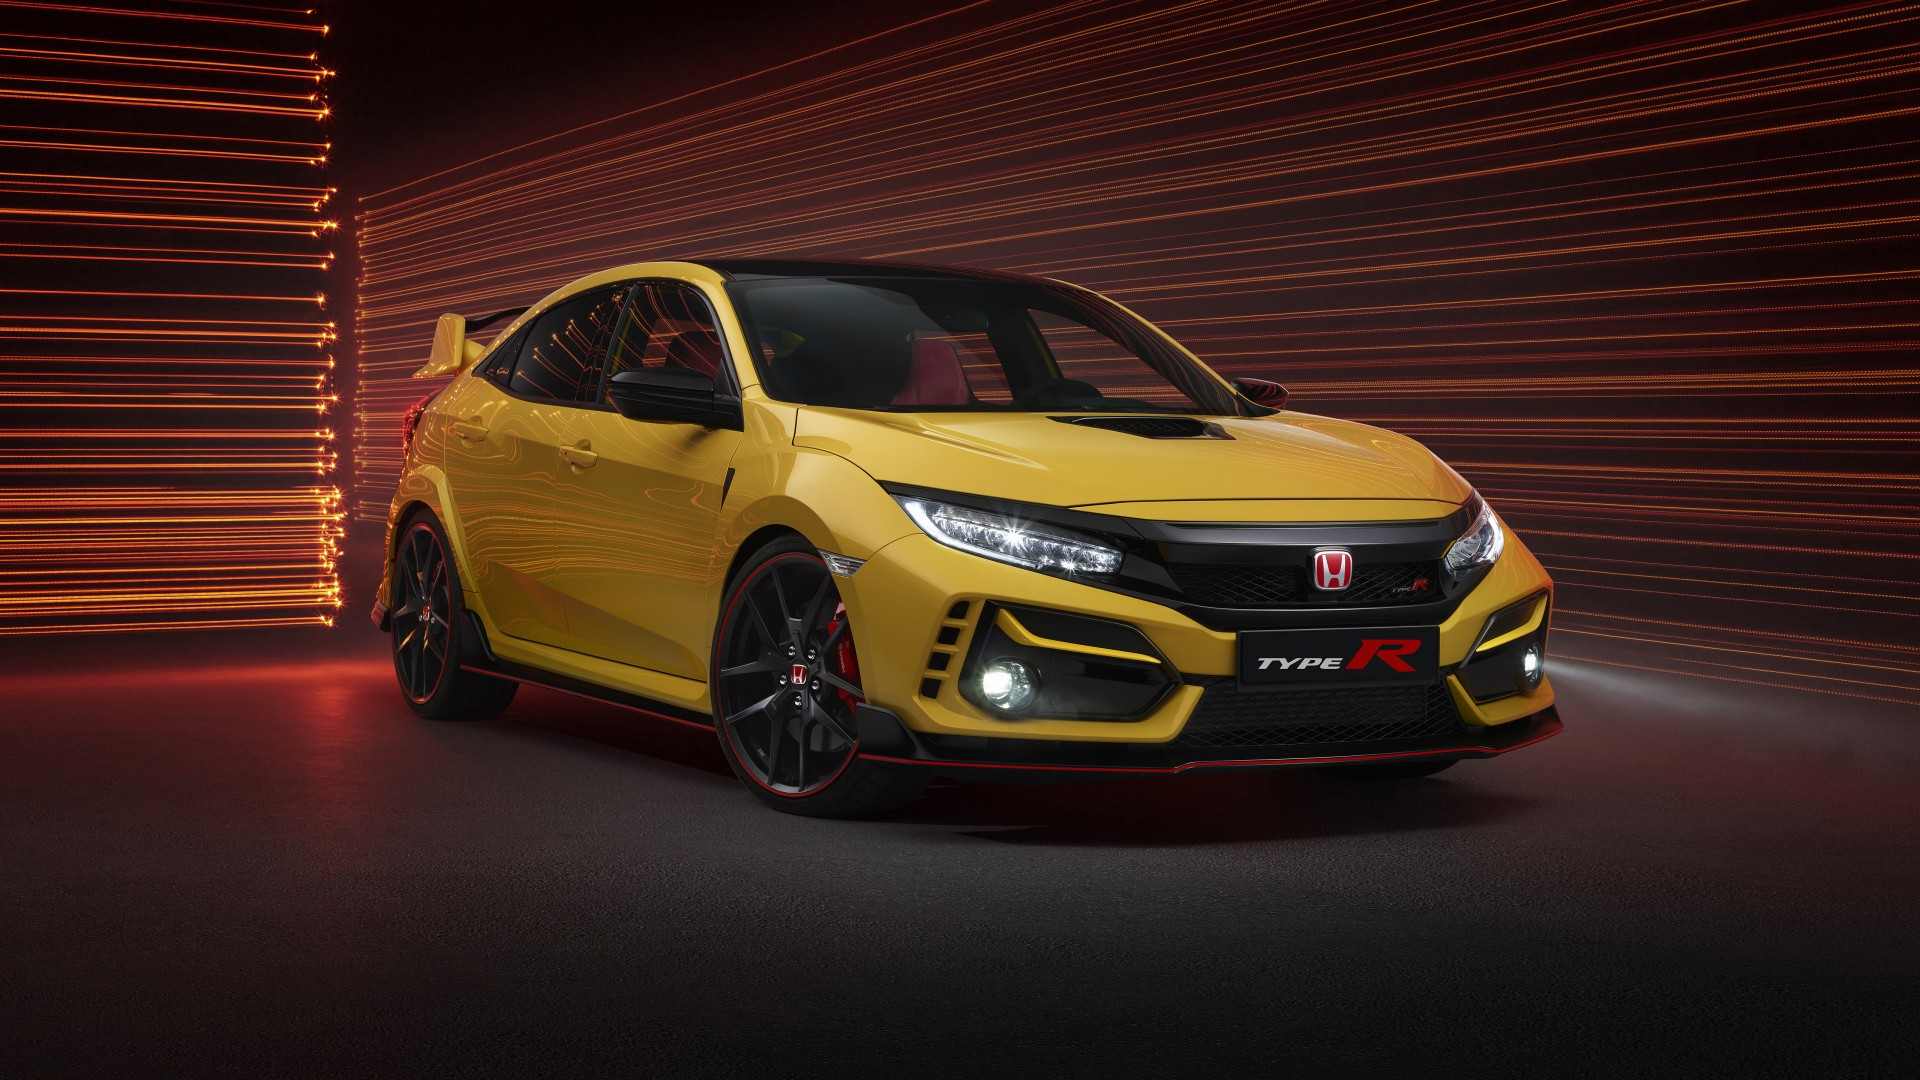 Honda Civic Type R Limited Edition 2020 5K Wallpaper | HD ...